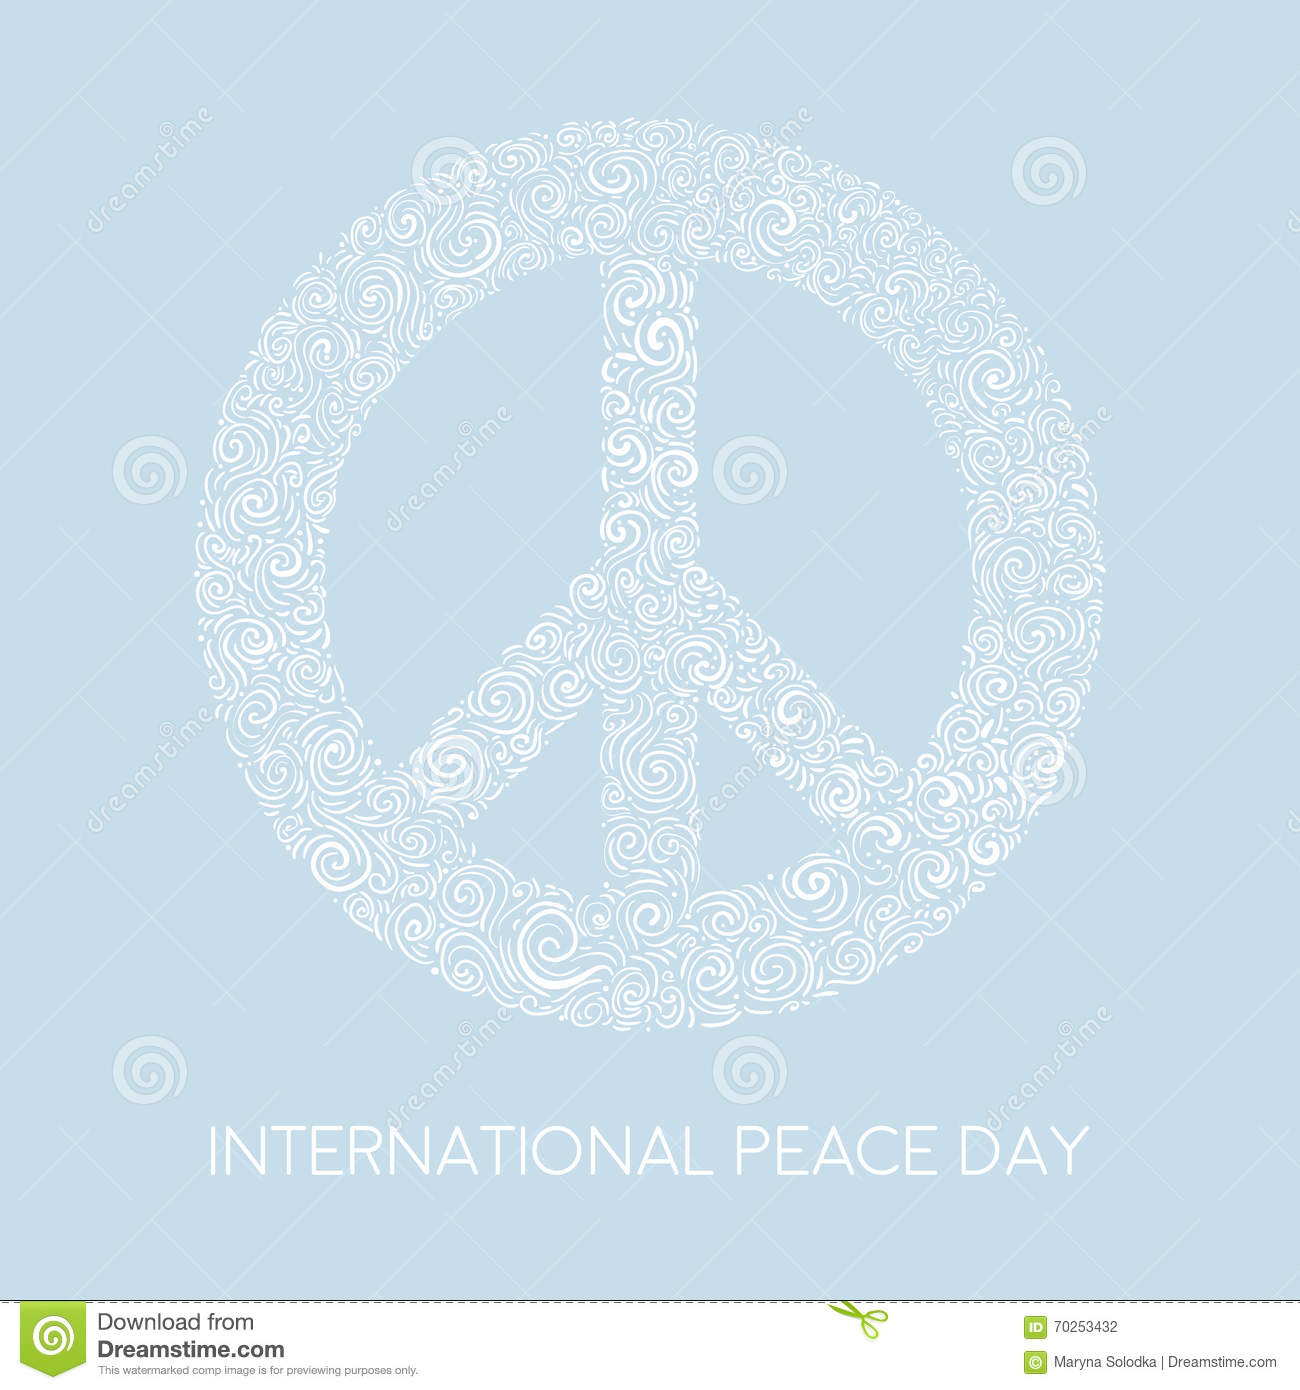 Vector illustration of peace sign on blue background template for vector illustration of peace sign on blue background template for international peace day biocorpaavc